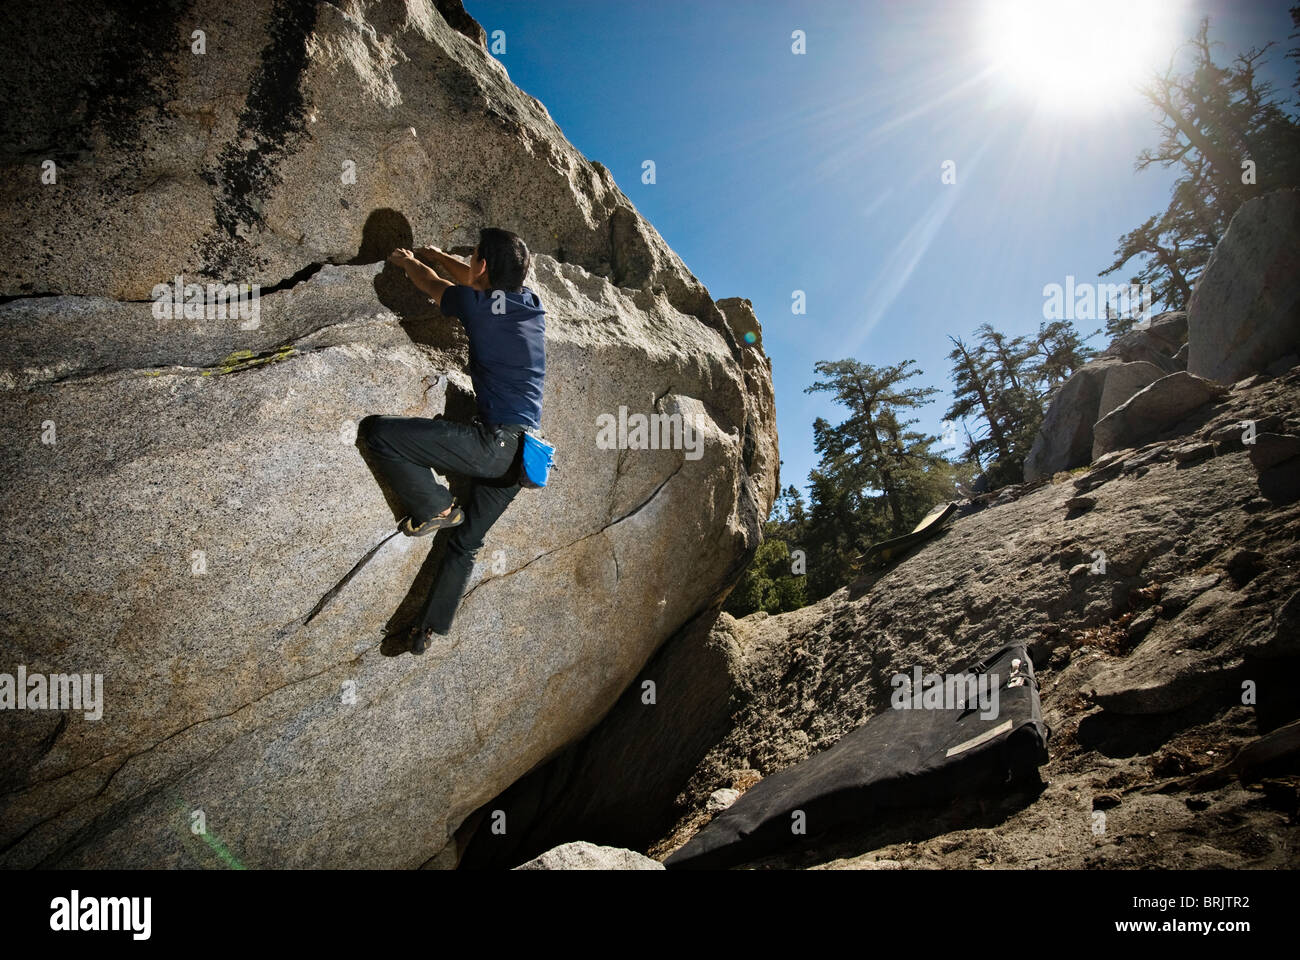 An Asian-American man rock climbs a boulder problem at The Tramway, Palm Springs, CA. - Stock Image